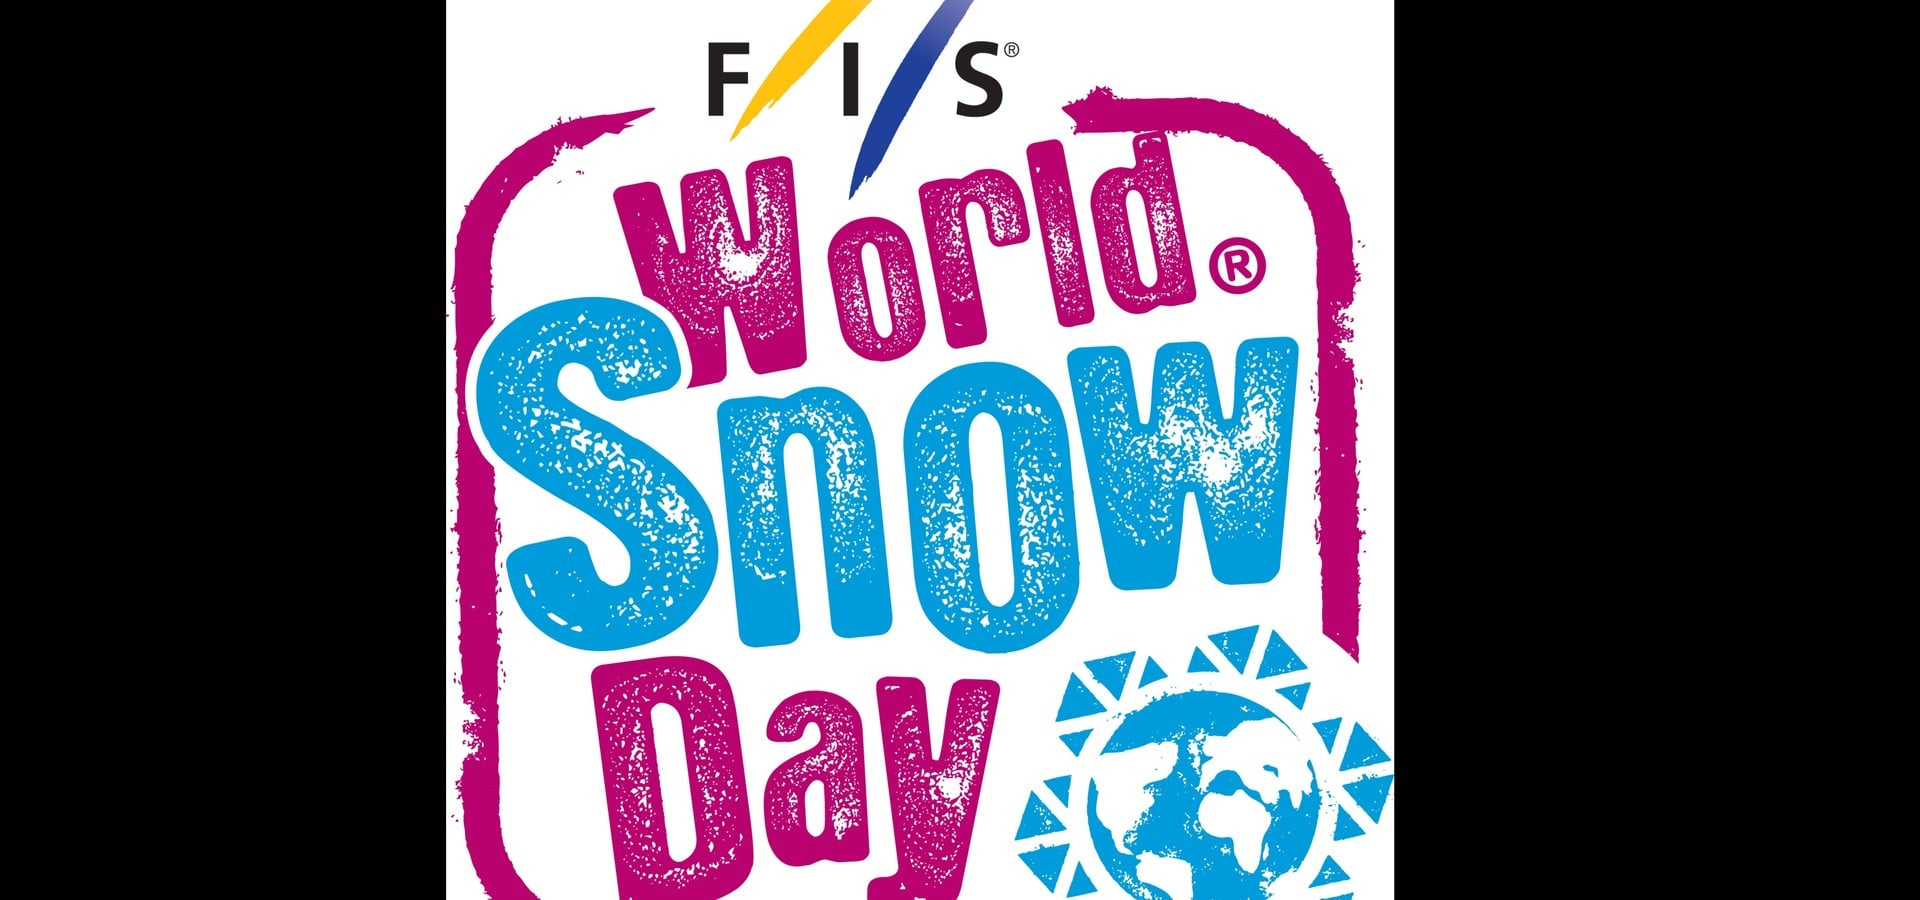 20/01 è il World Snow Day, festeggialo ad Arabba con l'evento Funslope Photo Quest